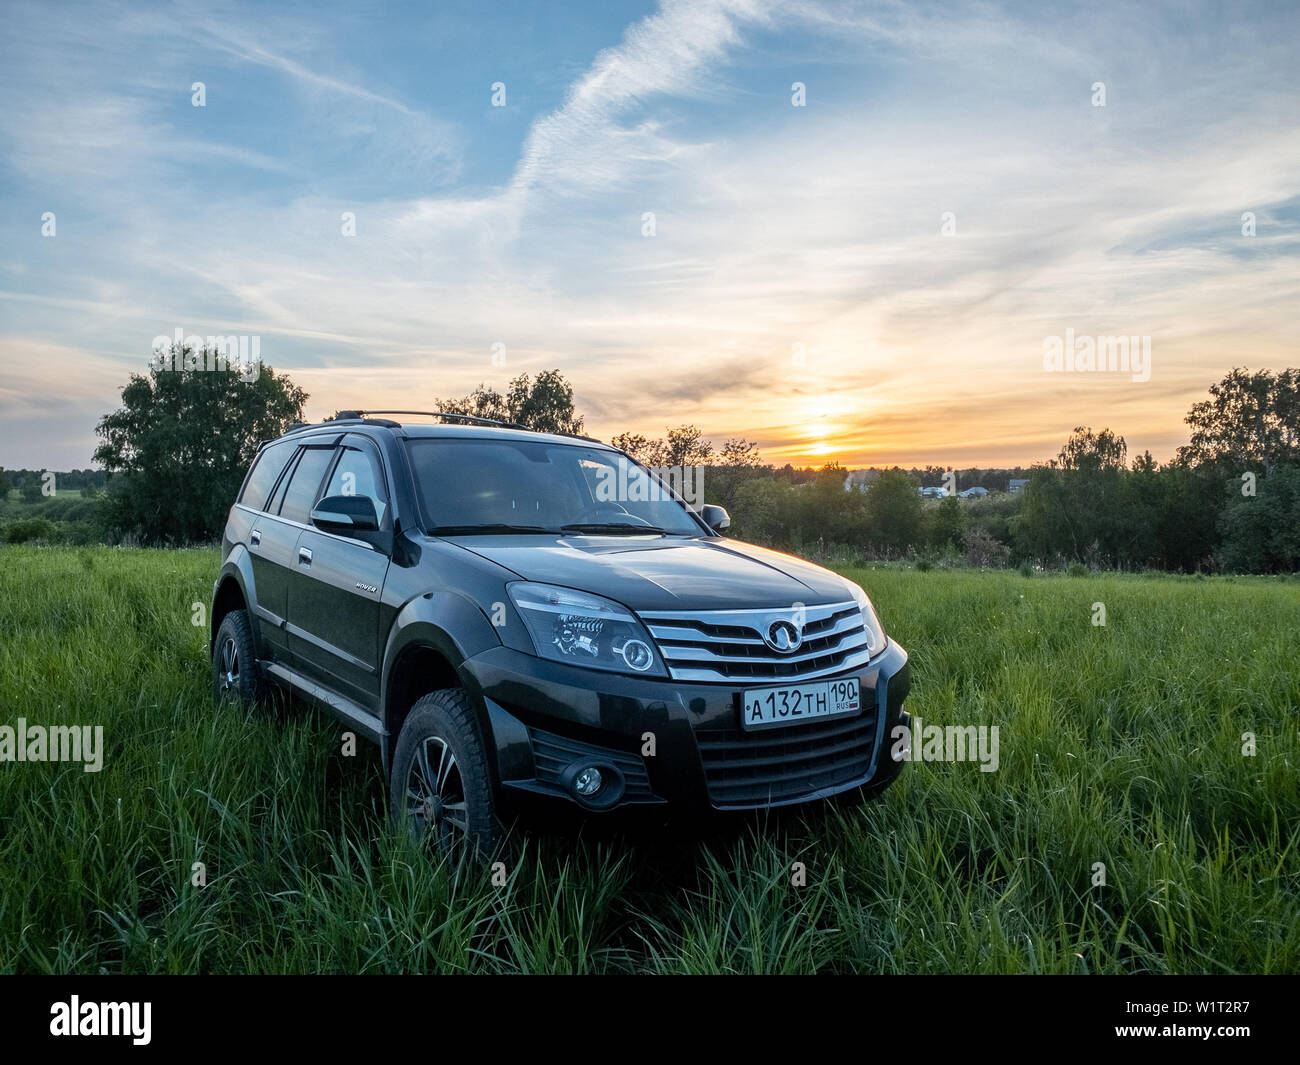 Moscow Russia May 24 2019 Black Chinese Suv Great Wall Hover H3 Kitajskij Vnedorozhnik Grejt Voll Hover 4x4 Offroad Off Road Stock Photo Alamy